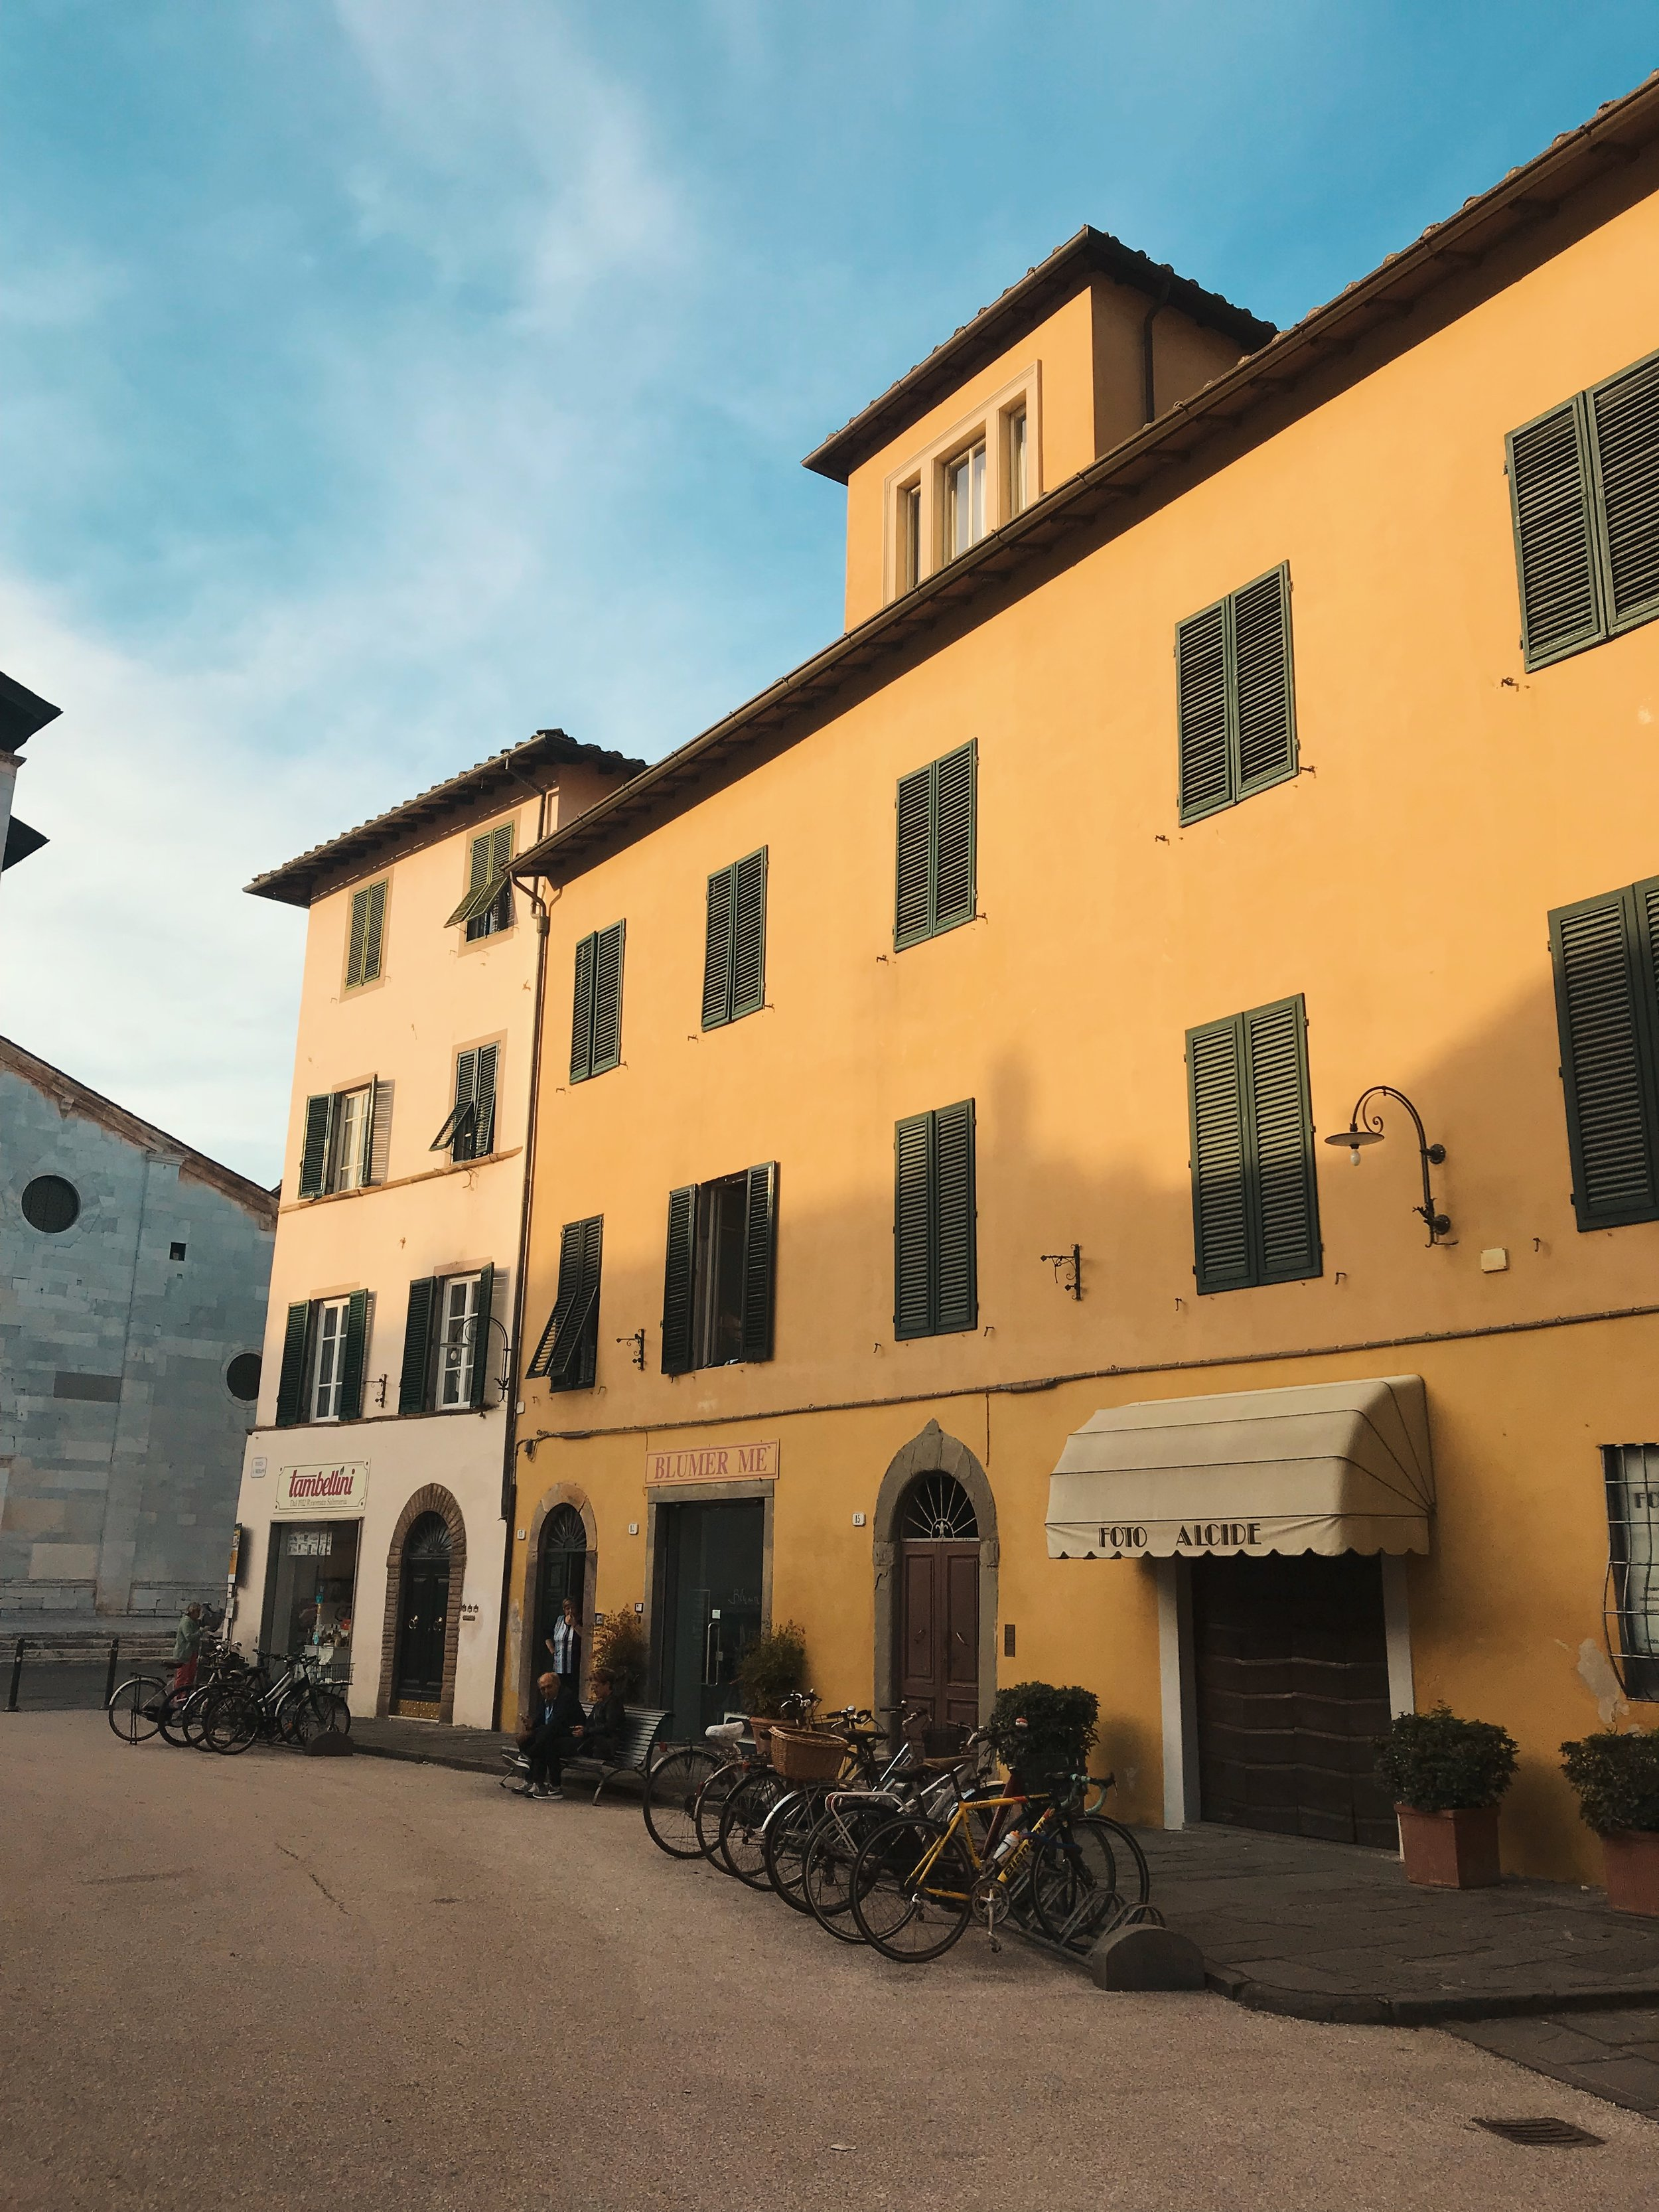 Piazza San Frediano is a lovely square where you can sit outside,  drink a coffee , and stare at this lovely color yellow.